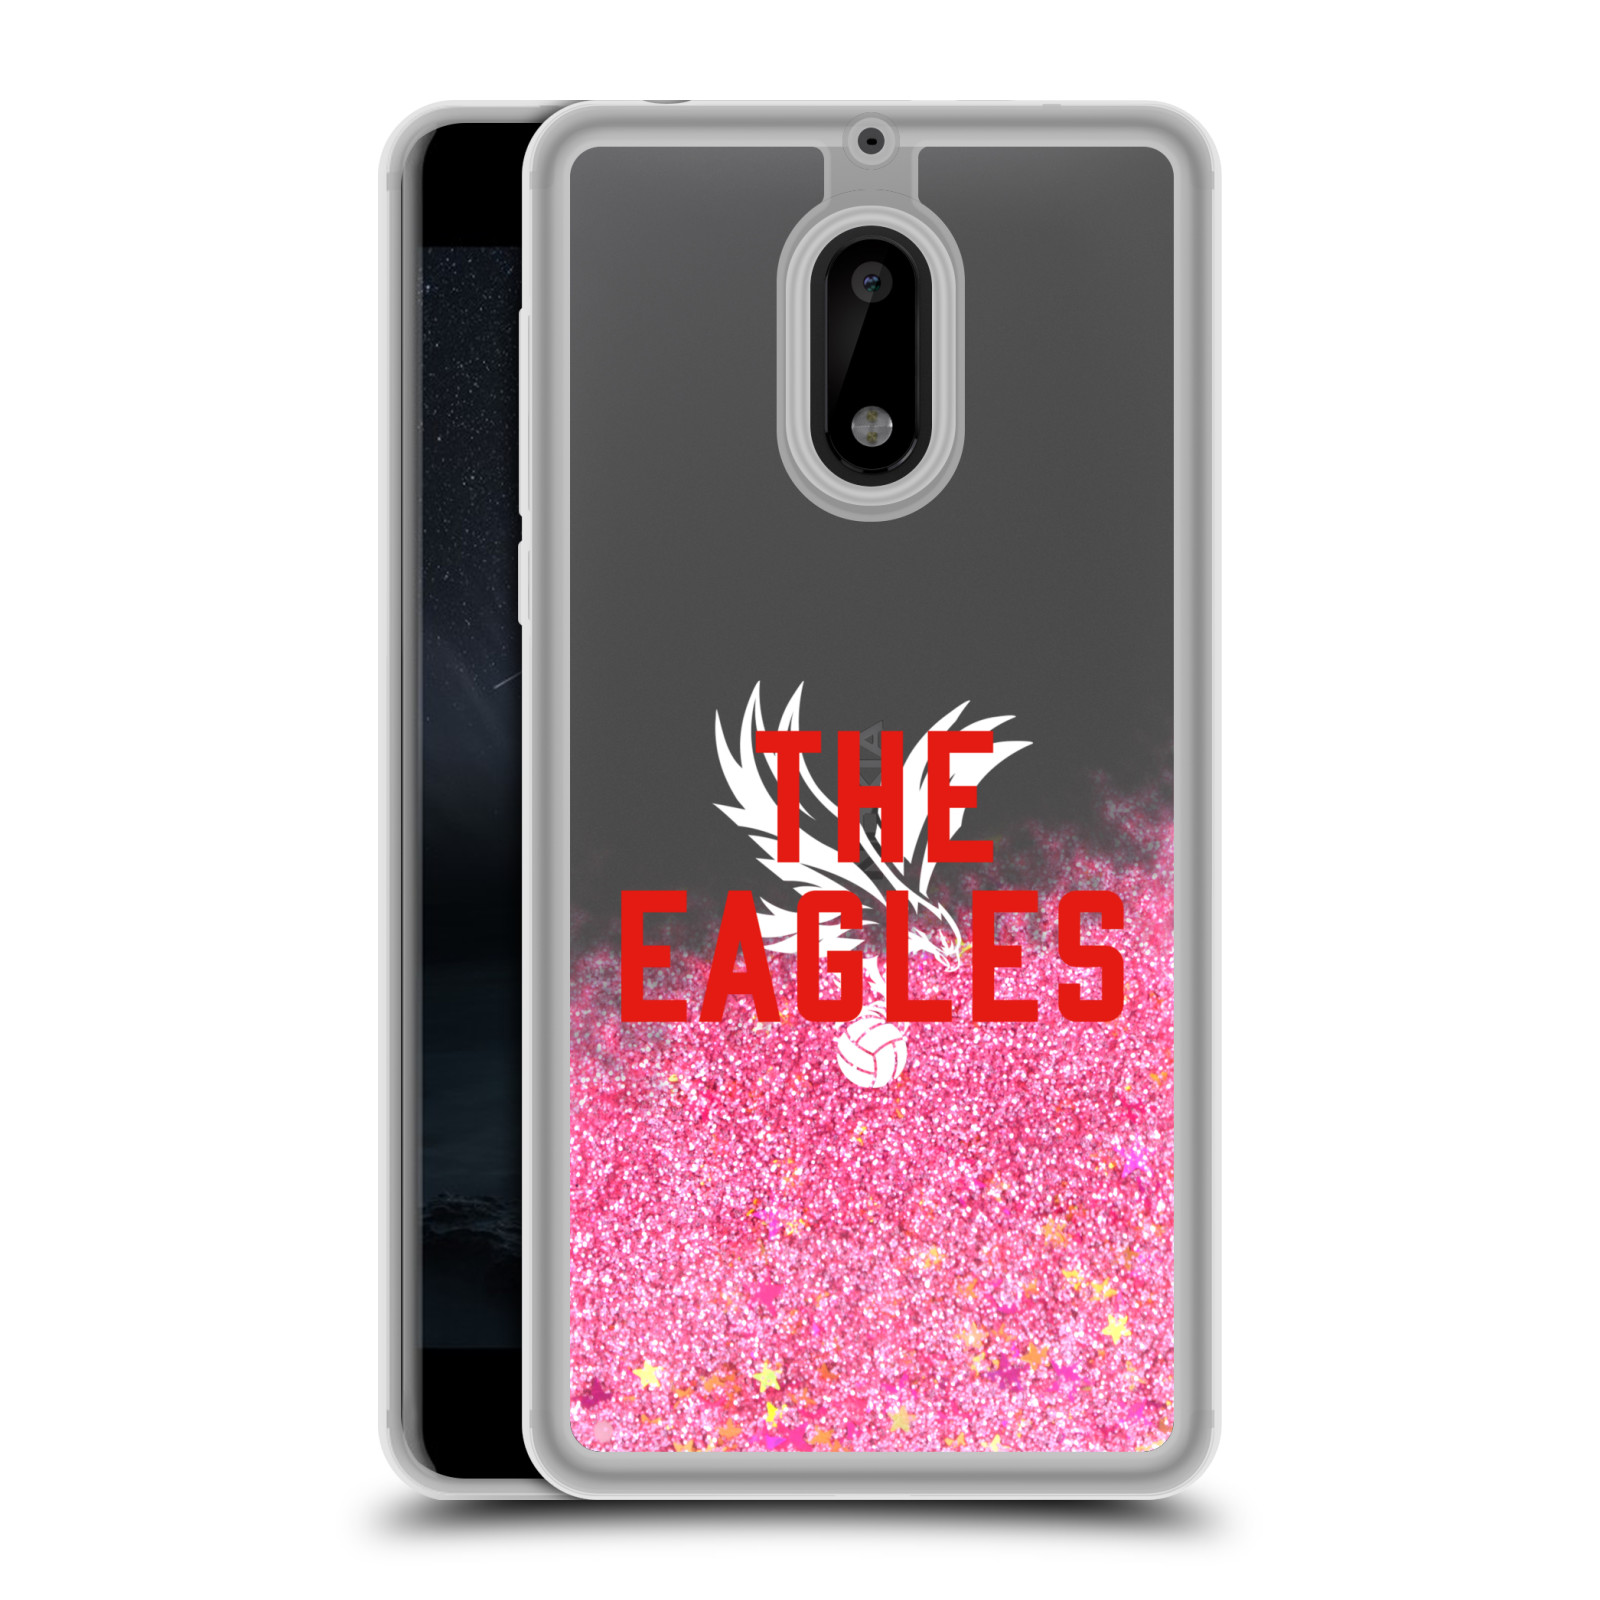 CRYSTAL-PALACE-FC-VARIOUS-DESIGNS-LIGHT-PINK-HYBRID-LIQUID-GLITTER-NOKIA-PHONES